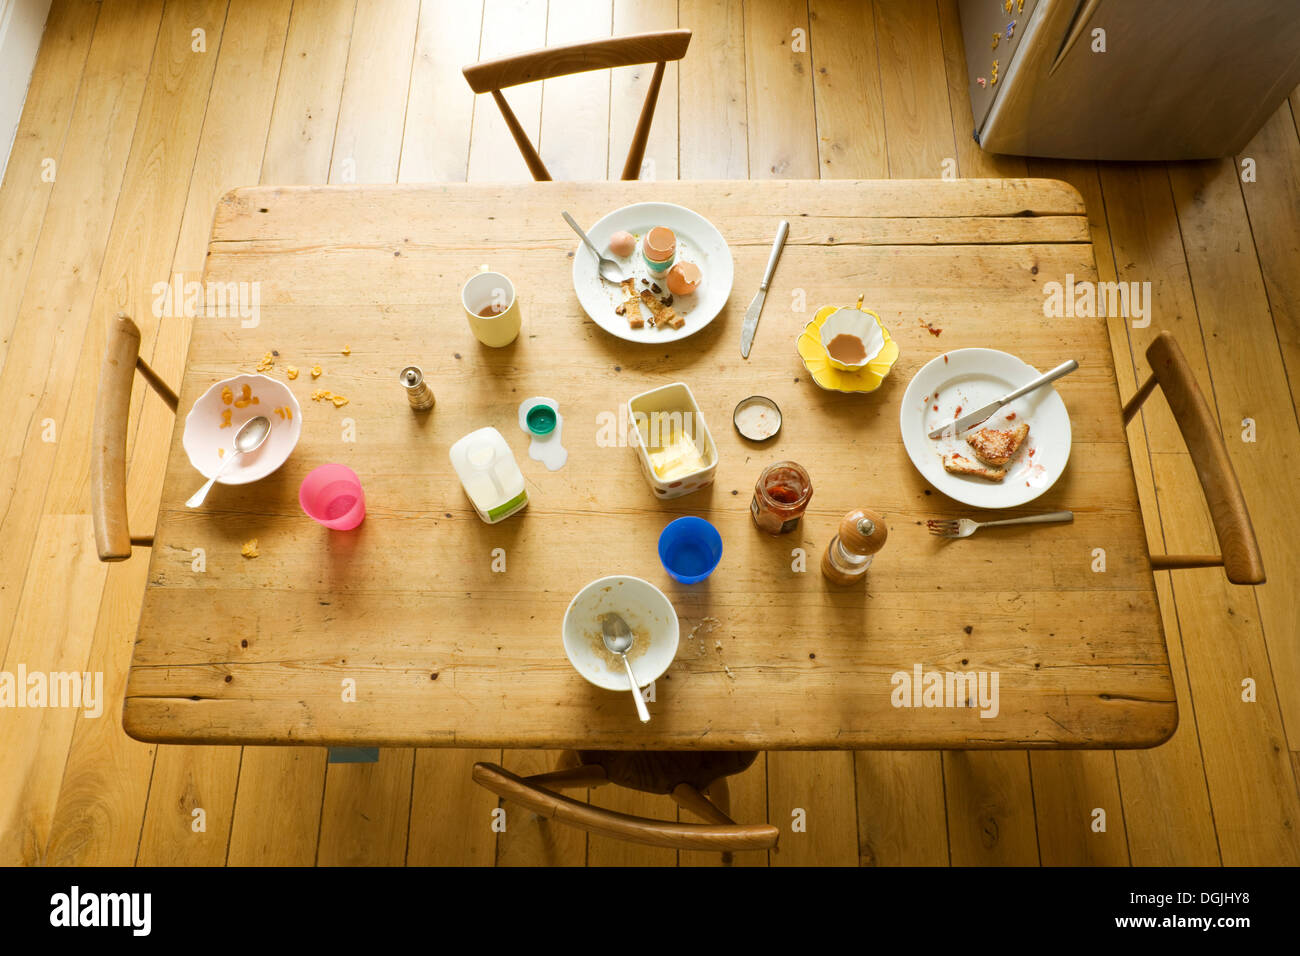 Overhead view of breakfast table with eaten food and messy plates Stock Photo